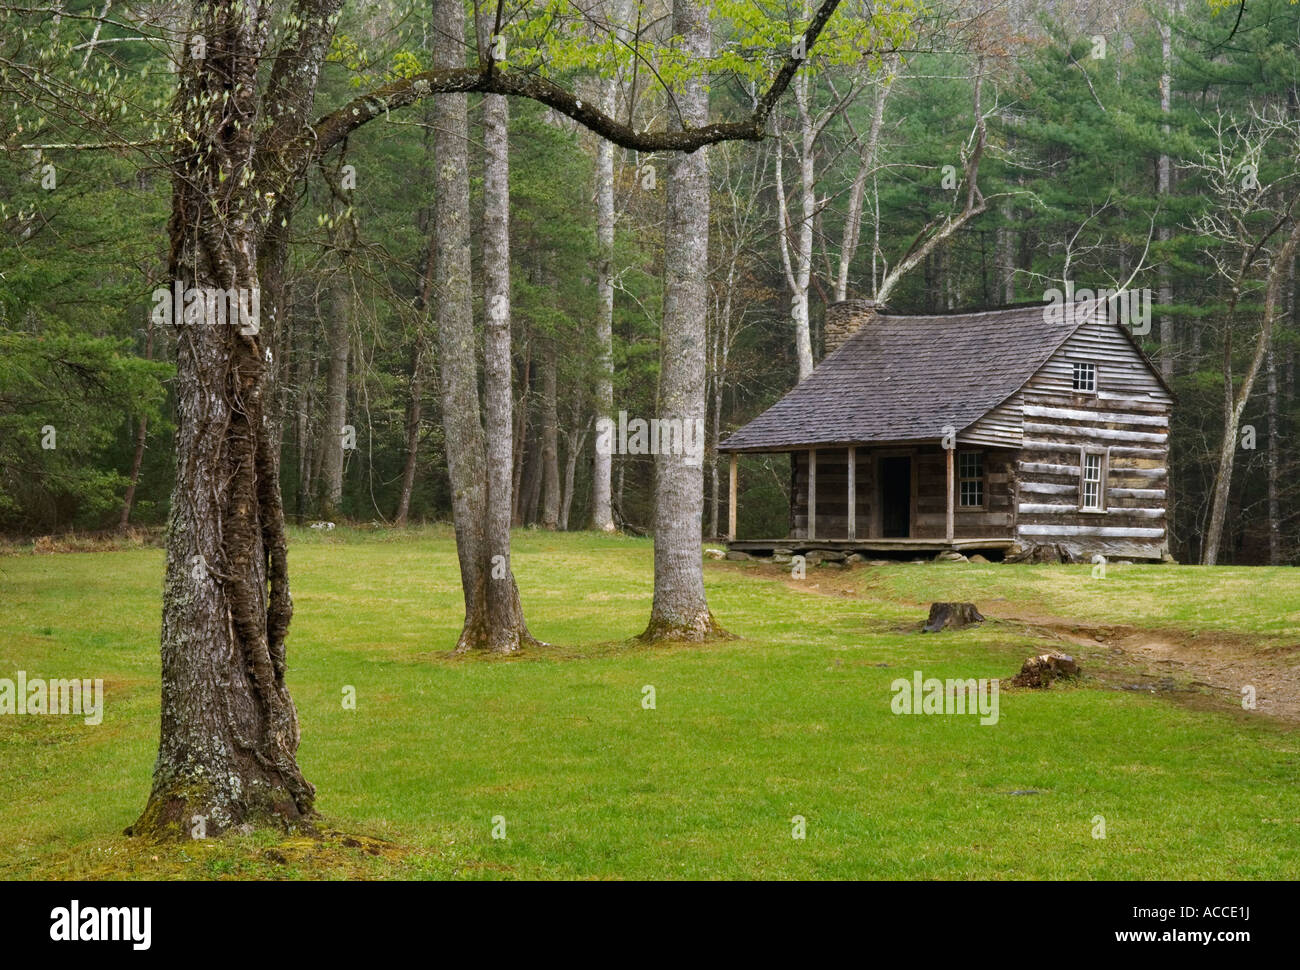 Carter Shields Cabin Cades Cove Great Smoky Mountains National Park Tennessee - Stock Image